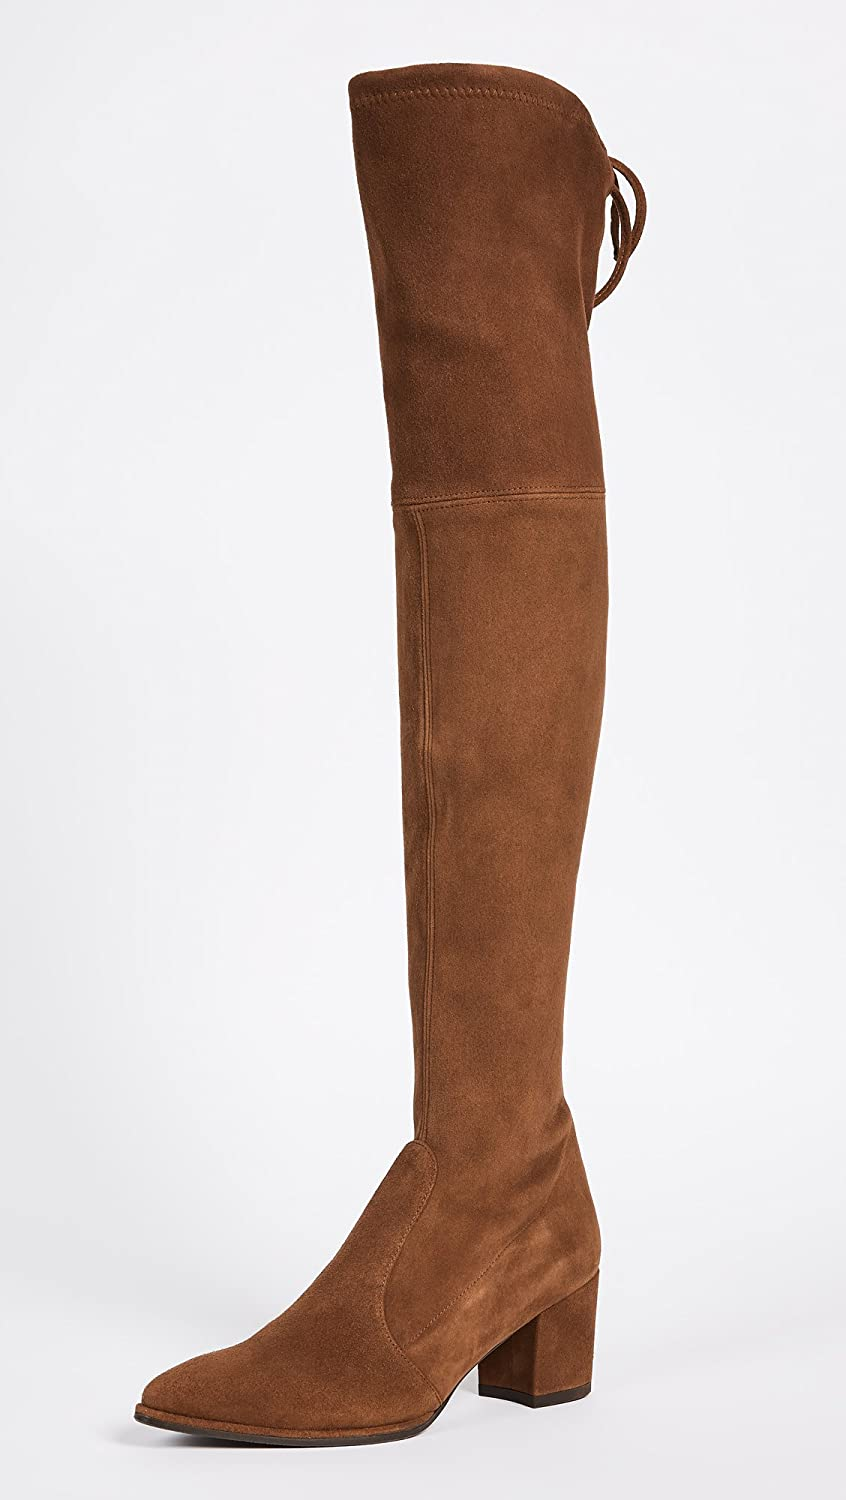 39944fcdf8e Stuart Weitzman Women s Thighland Over The Knee Boots